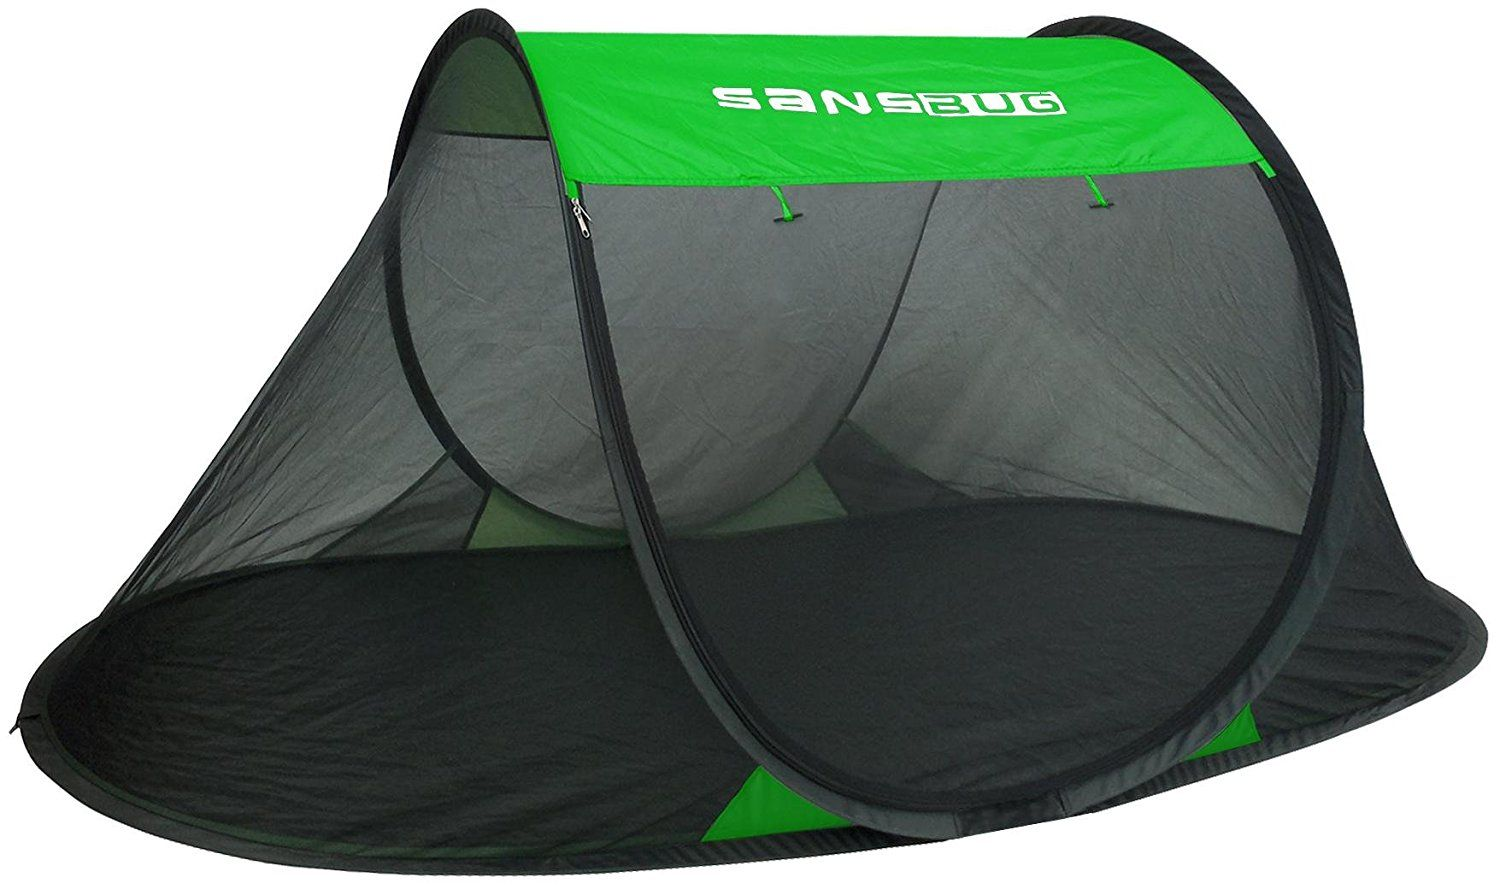 SansBug 3-Person Screen Shelter - Tarp Floor- *** Additional details at · Mosquito Net BedC&ing ...  sc 1 st  Pinterest & SansBug 3-Person Screen Shelter - Tarp Floor- *** Additional ...